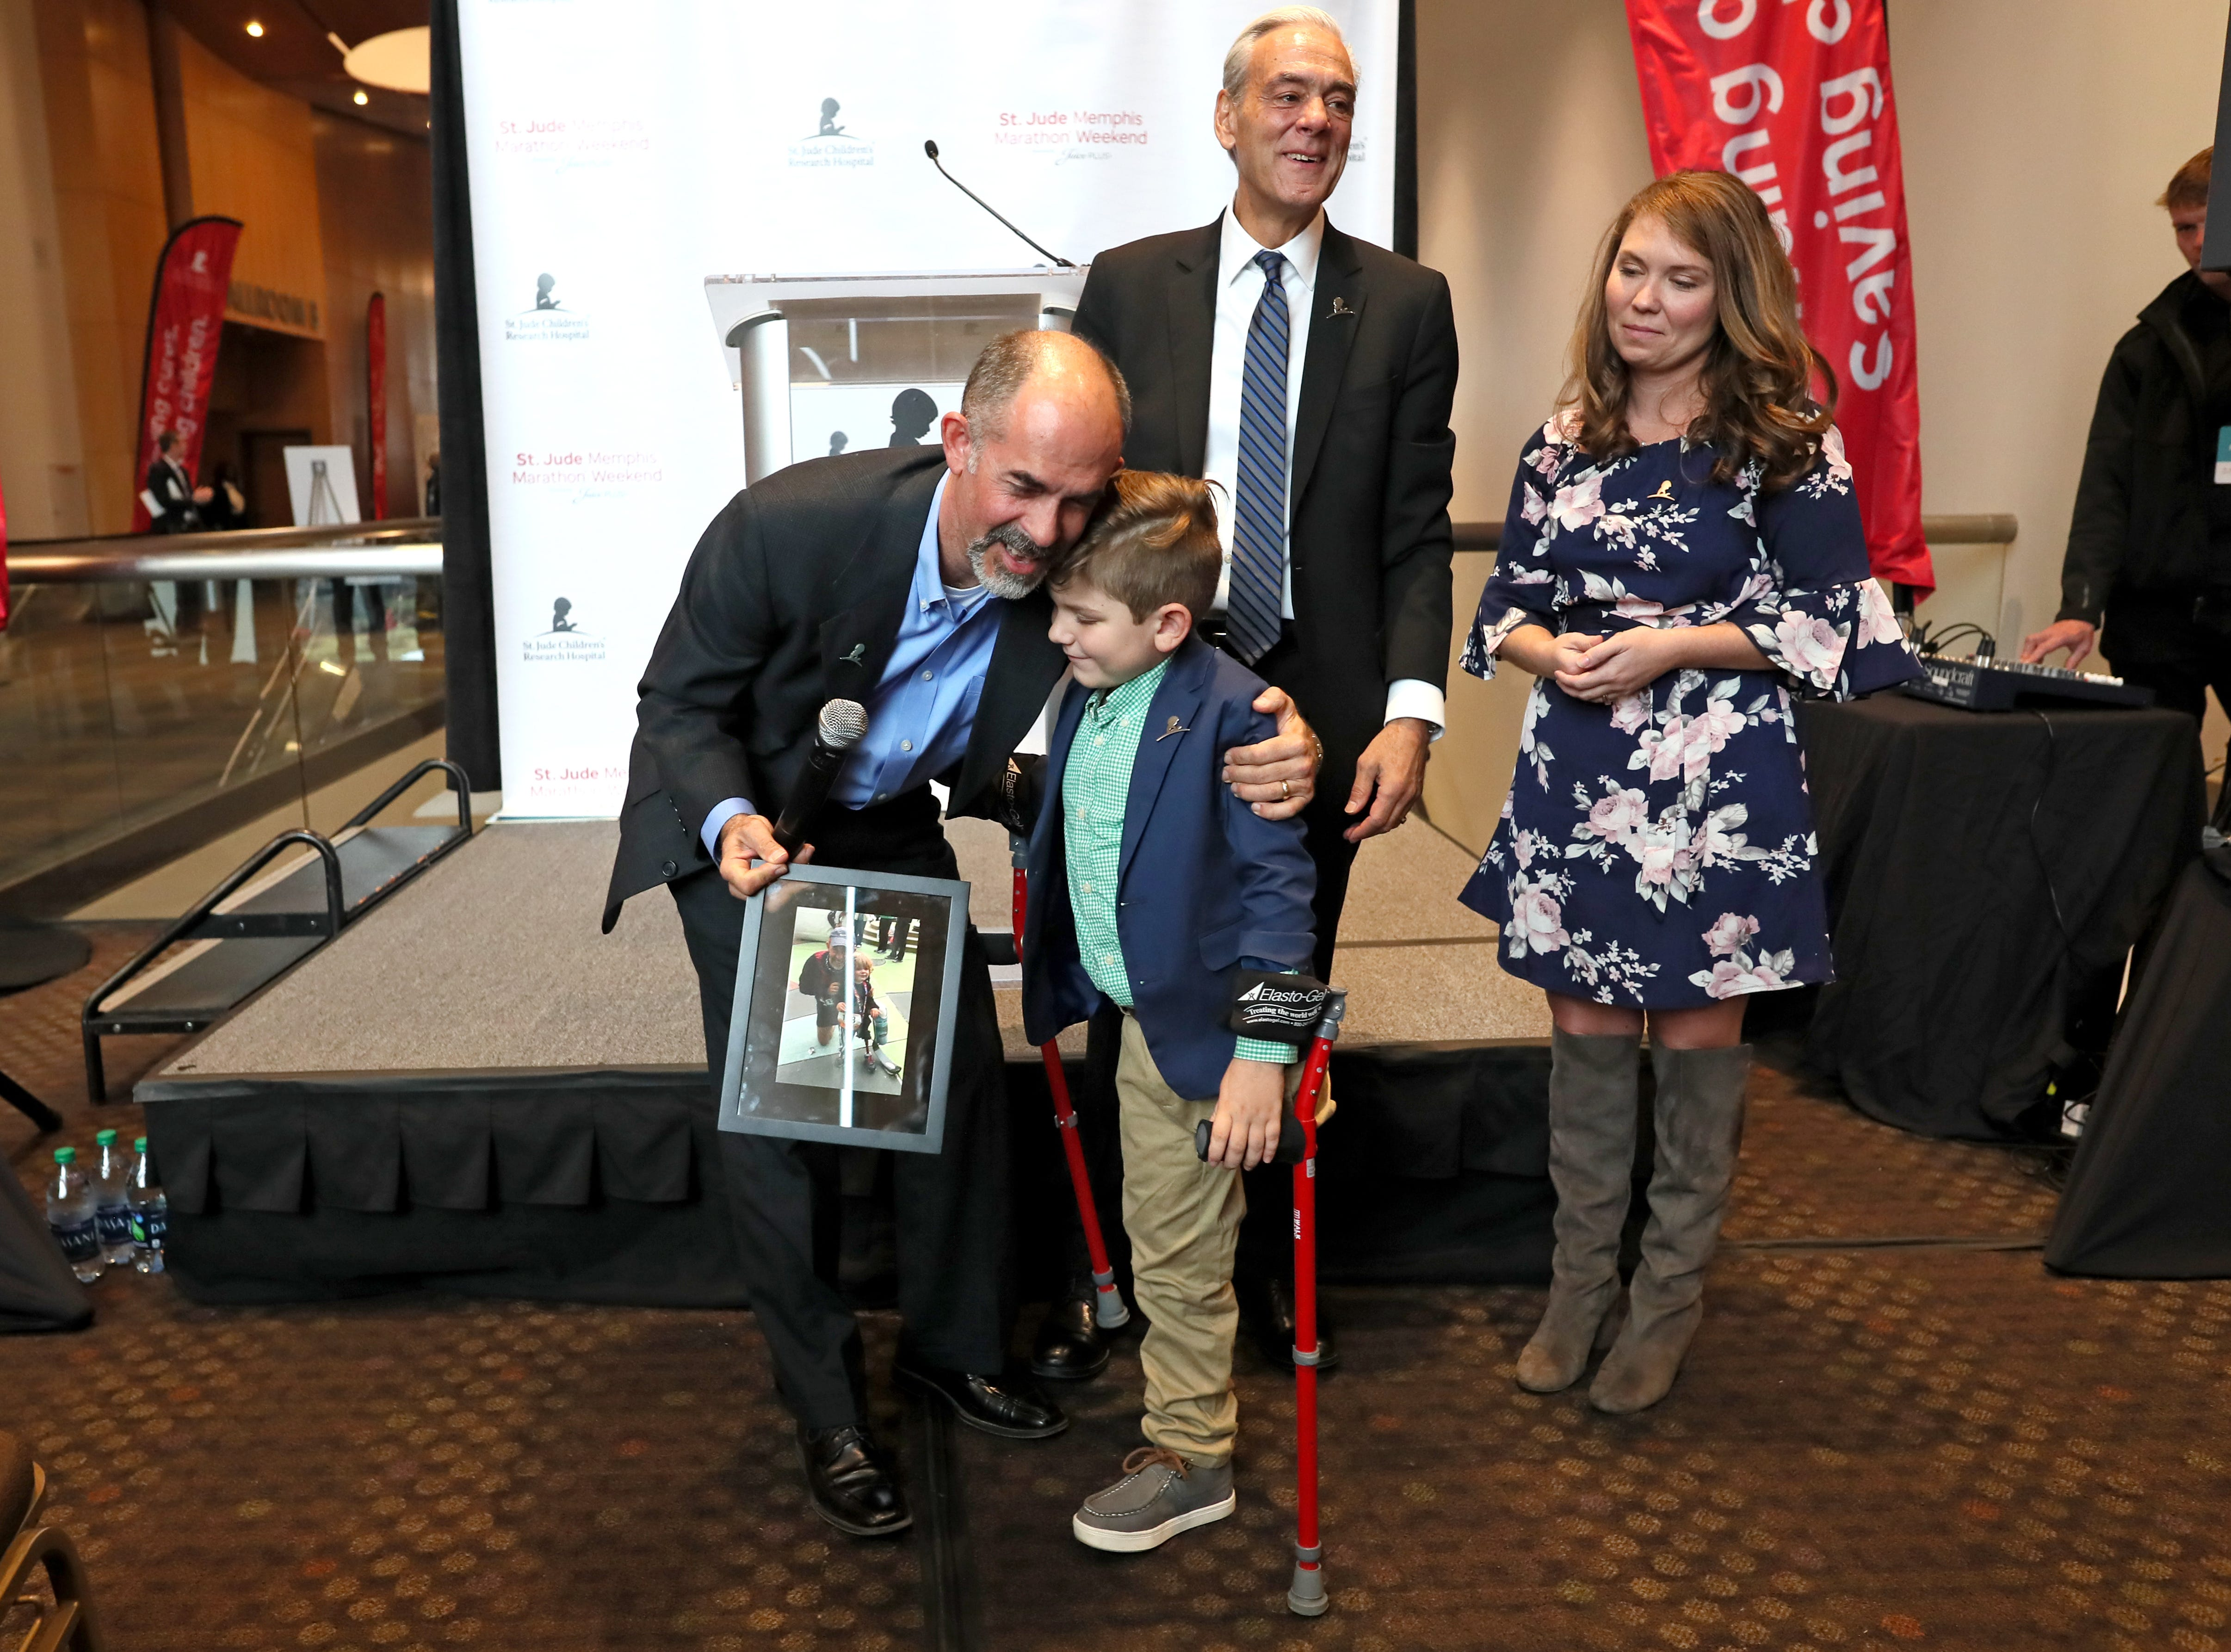 St. Jude Hero Among Us award recipient Kent Stoneking hugs Kael Hill, 6, during a press conference at the Cook Convention Center on Thursday, Nov. 29, 2018. Stoneking, who lost his leg in a motorcycle accident, has been an ambassador for St. Jude, running in their annual marathon to help children like Kael, who was a patient at the children's hospital.